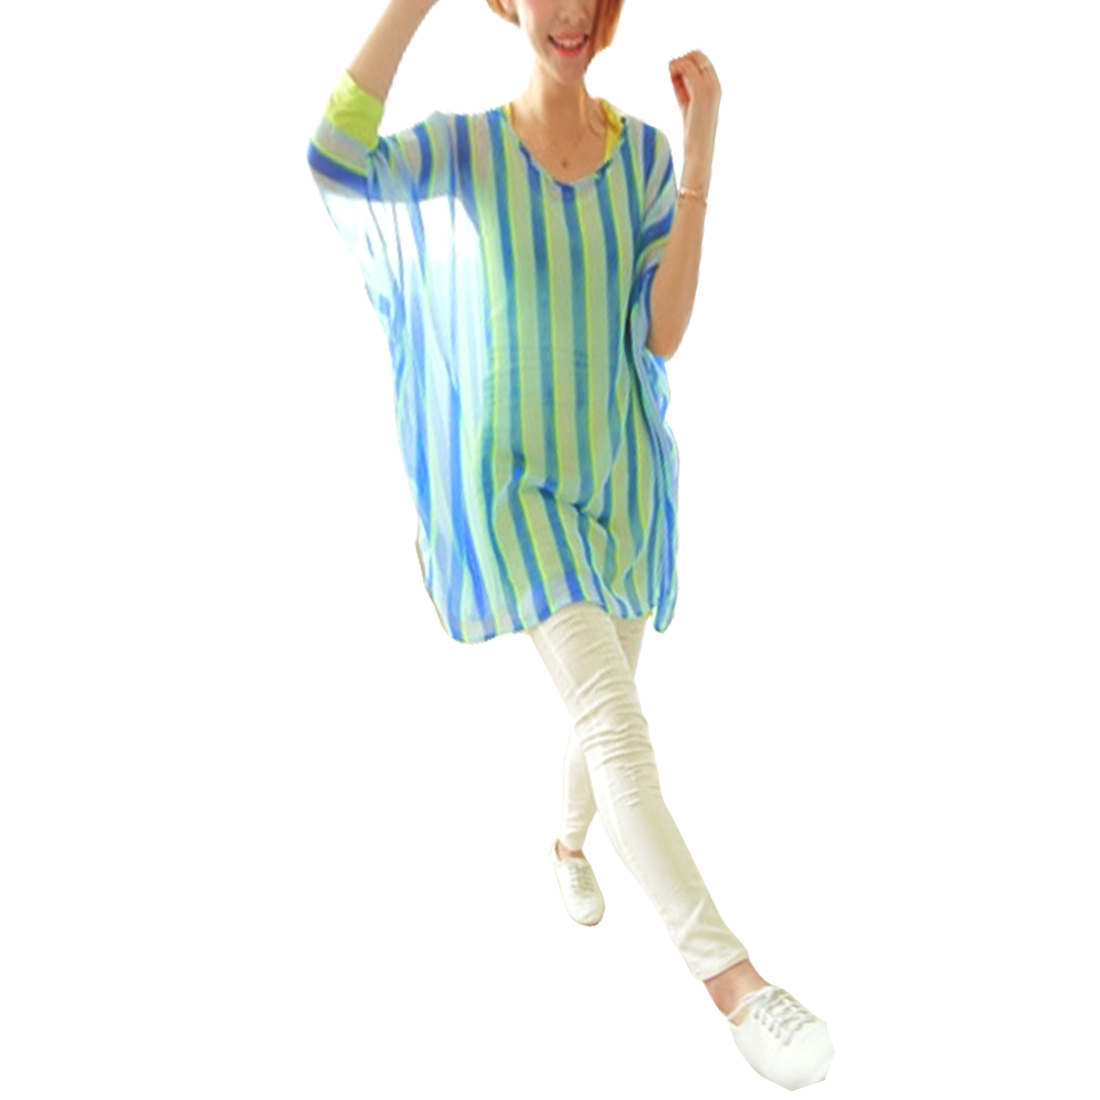 Woman Round Neck Elbow Batwing Sleeve Stripes Pattern White Blue Blouse M